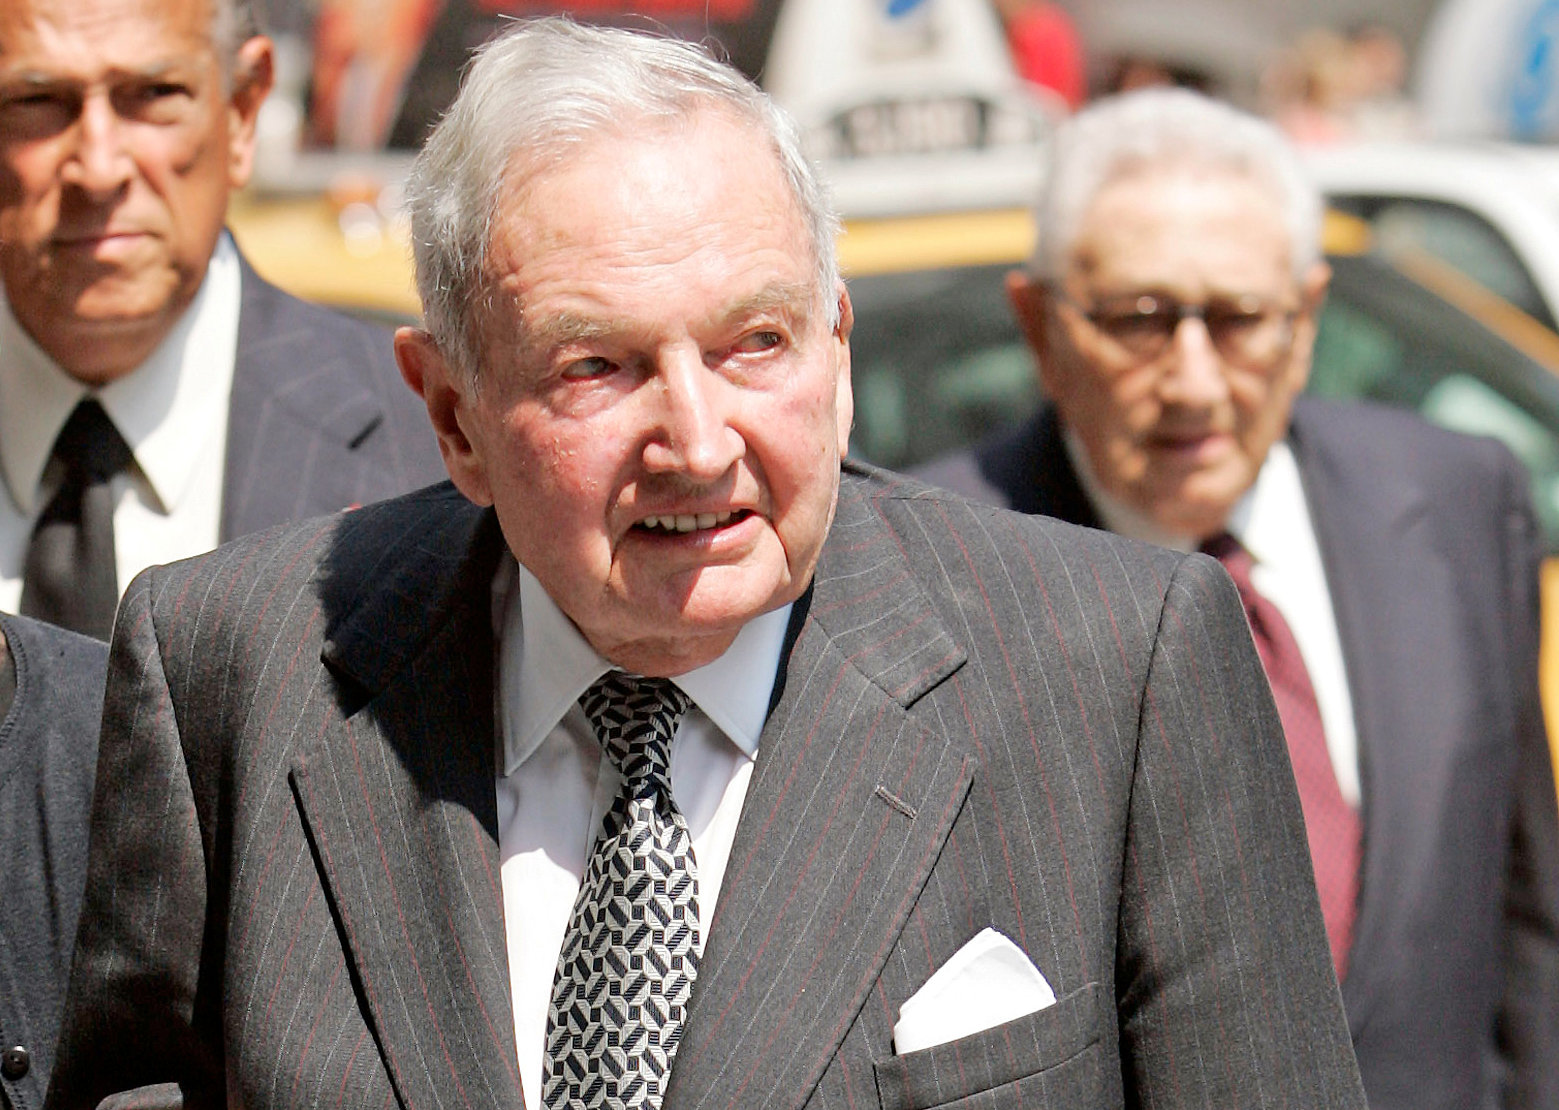 FILE PHOTO -- David Rockefeller arrives at the funeral service for New York socialite and philanthropist Brooke Astor at St. Thomas